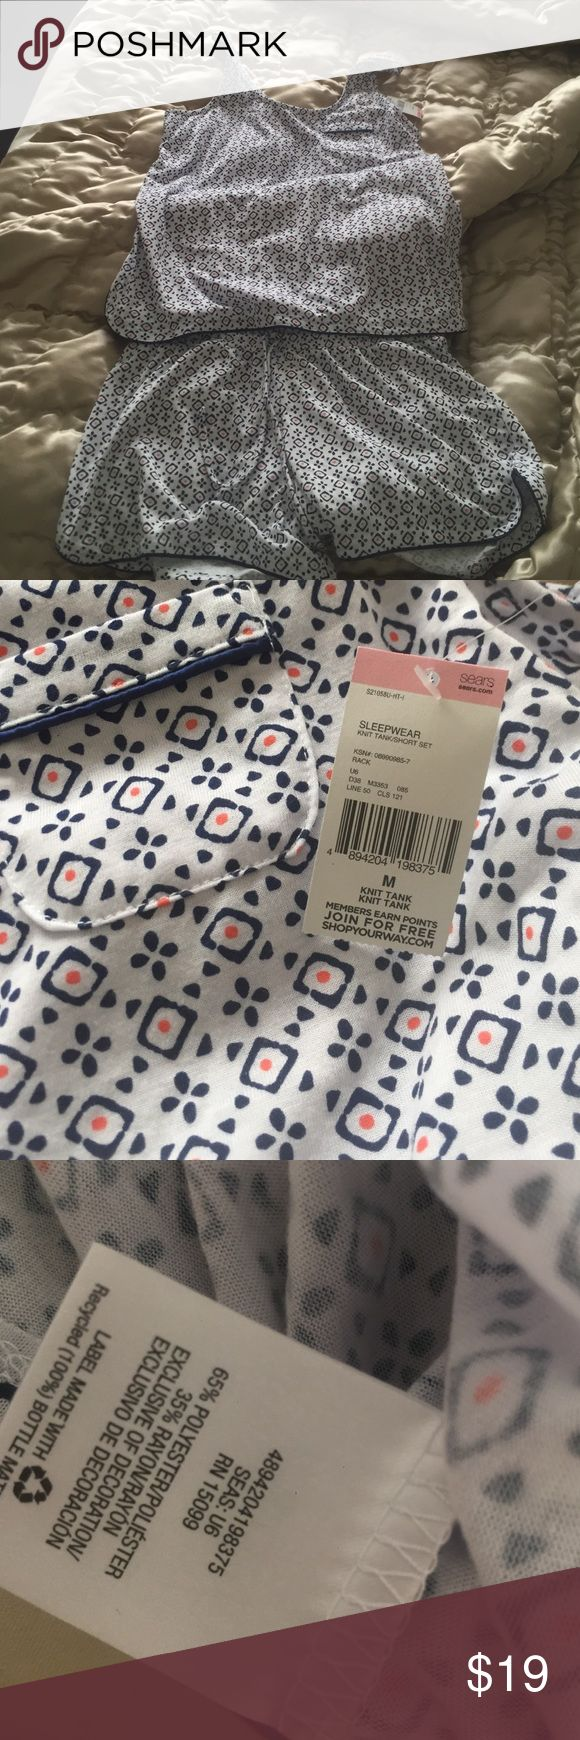 Women's PJ Set Never worn with tag still attached. PJ Set. Short and tank top. Size M. no pay pal. no trades no exchanges. no refunds.  Covington Intimates & Sleepwear Pajamas